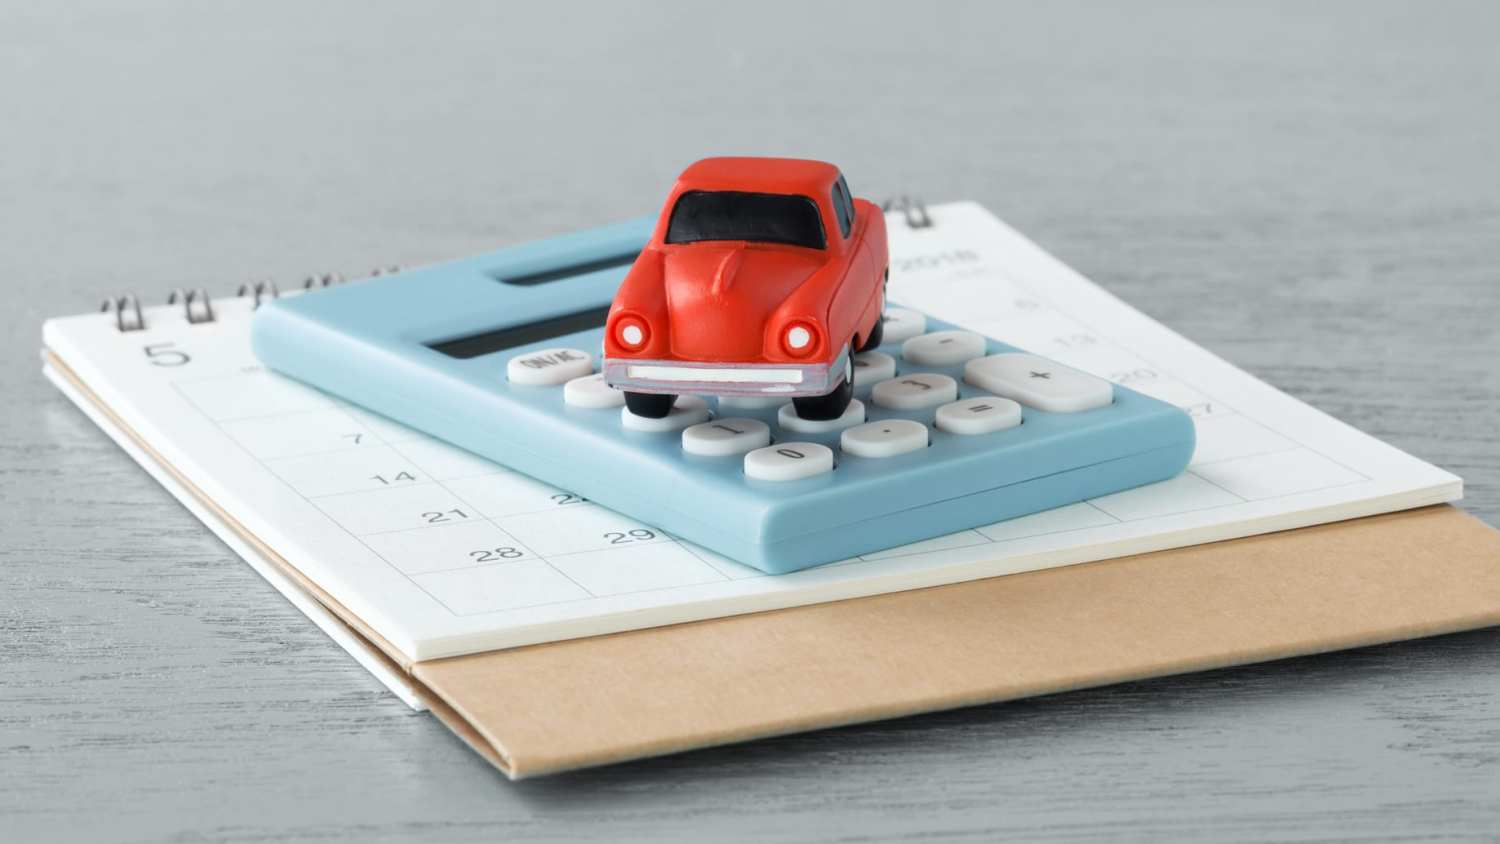 Toy car on caculator and calendar on wooden table